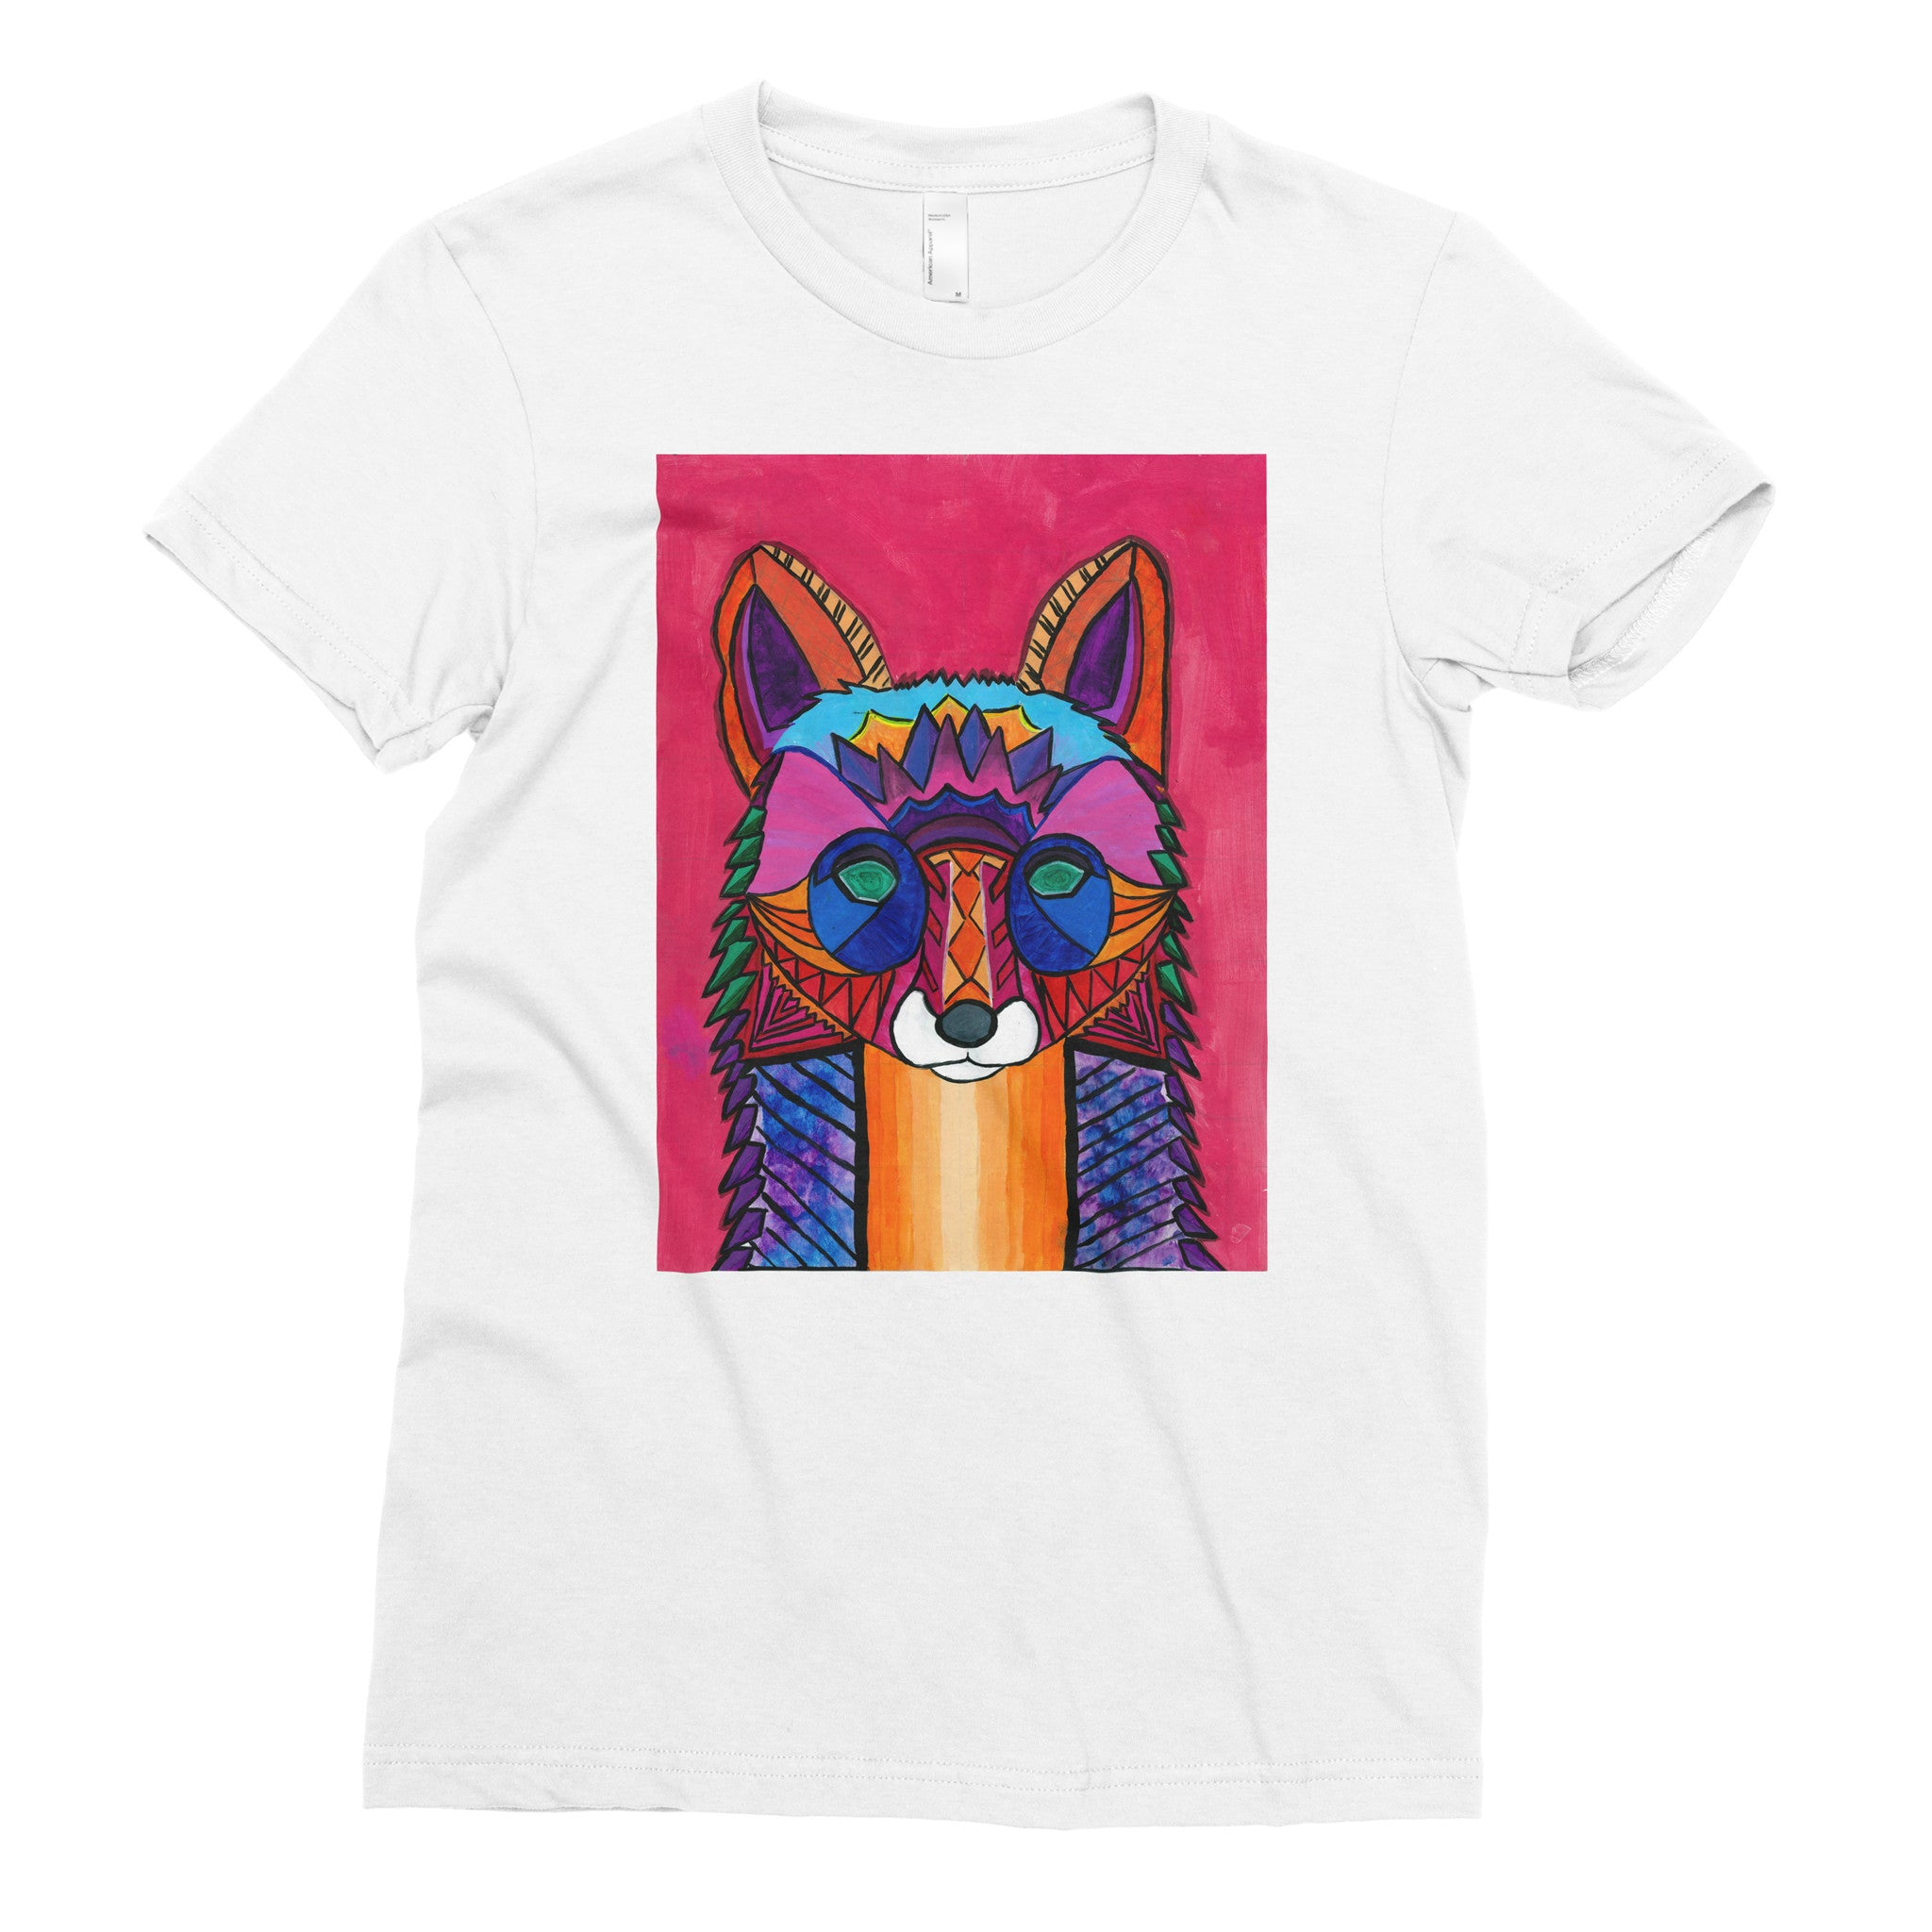 The Voice of the Fox by Mithsuca, 8th grade - Adult T-shirt - Rightside Shirts - 1